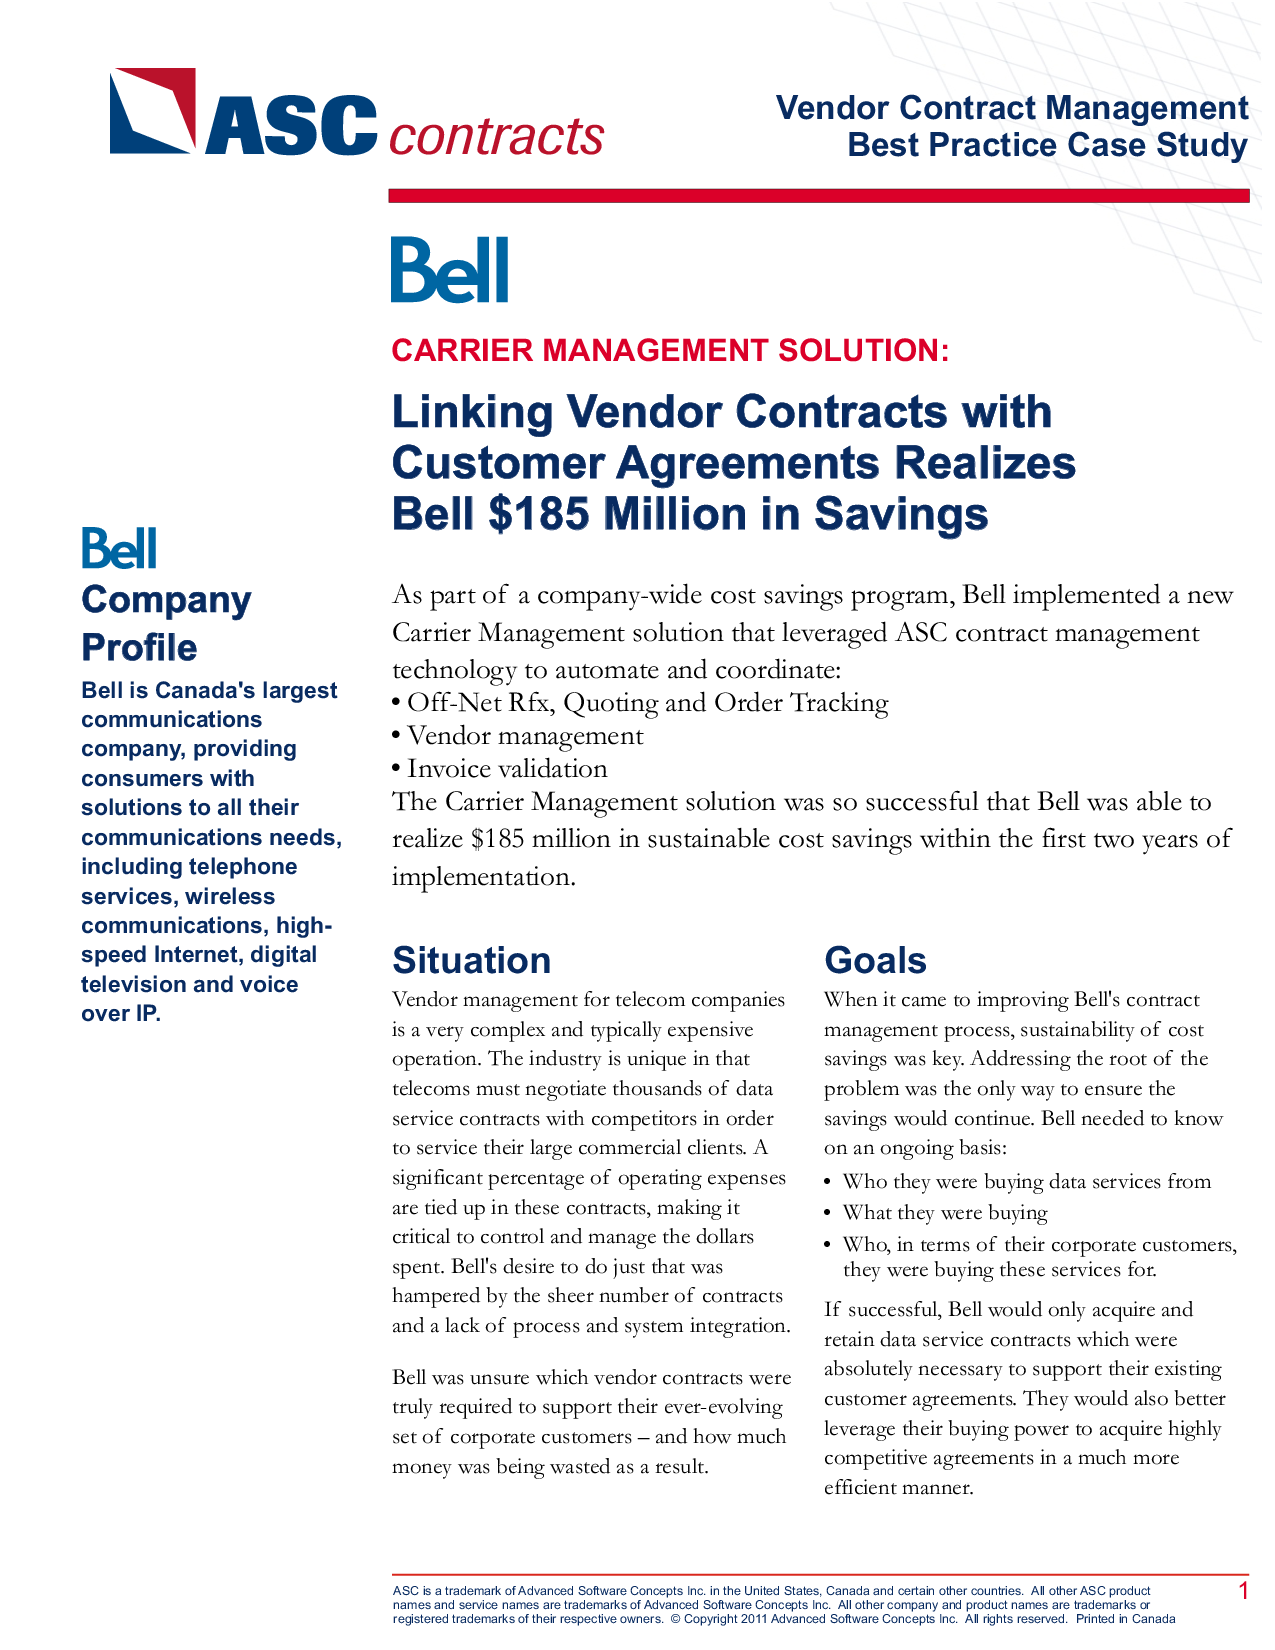 Linking Vendor Contracts With Customer Agreements Realizes B